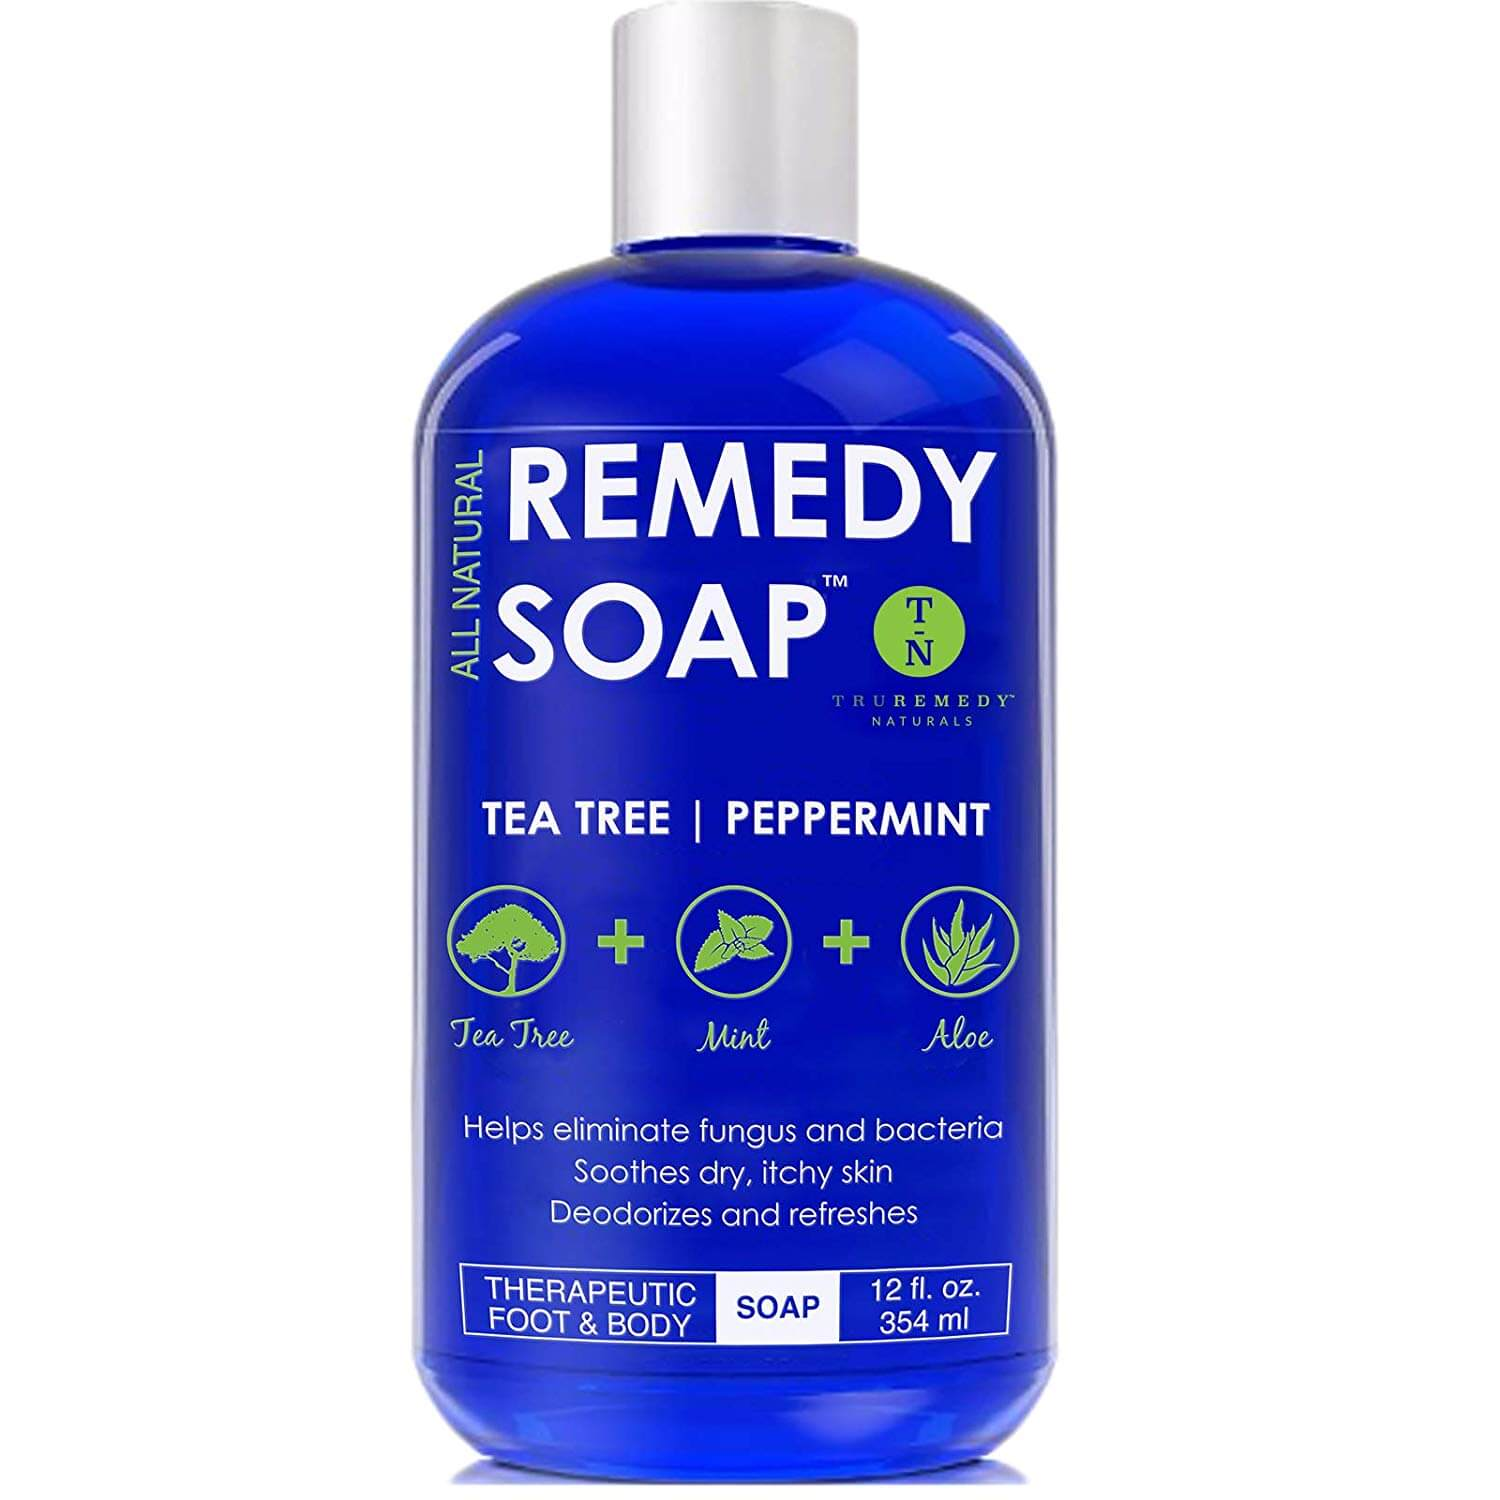 Remedy soap tea tree oil body wash is a product of Honestie Naturals. This product ranks second on this list due to its fantastic function. This remedy soap is formulated with premium organic and natural ingredients, including tea tree oil, peppermint oil, eucalyptus oil, olive oil, and so on. These premium natural ingredients play a vital role in improving stubborn skin irritations as well as moisturizing your skin amazingly. Besides, you may rest assured that there are no harmful chemical preservatives, synthetic fragrances, or silicone.